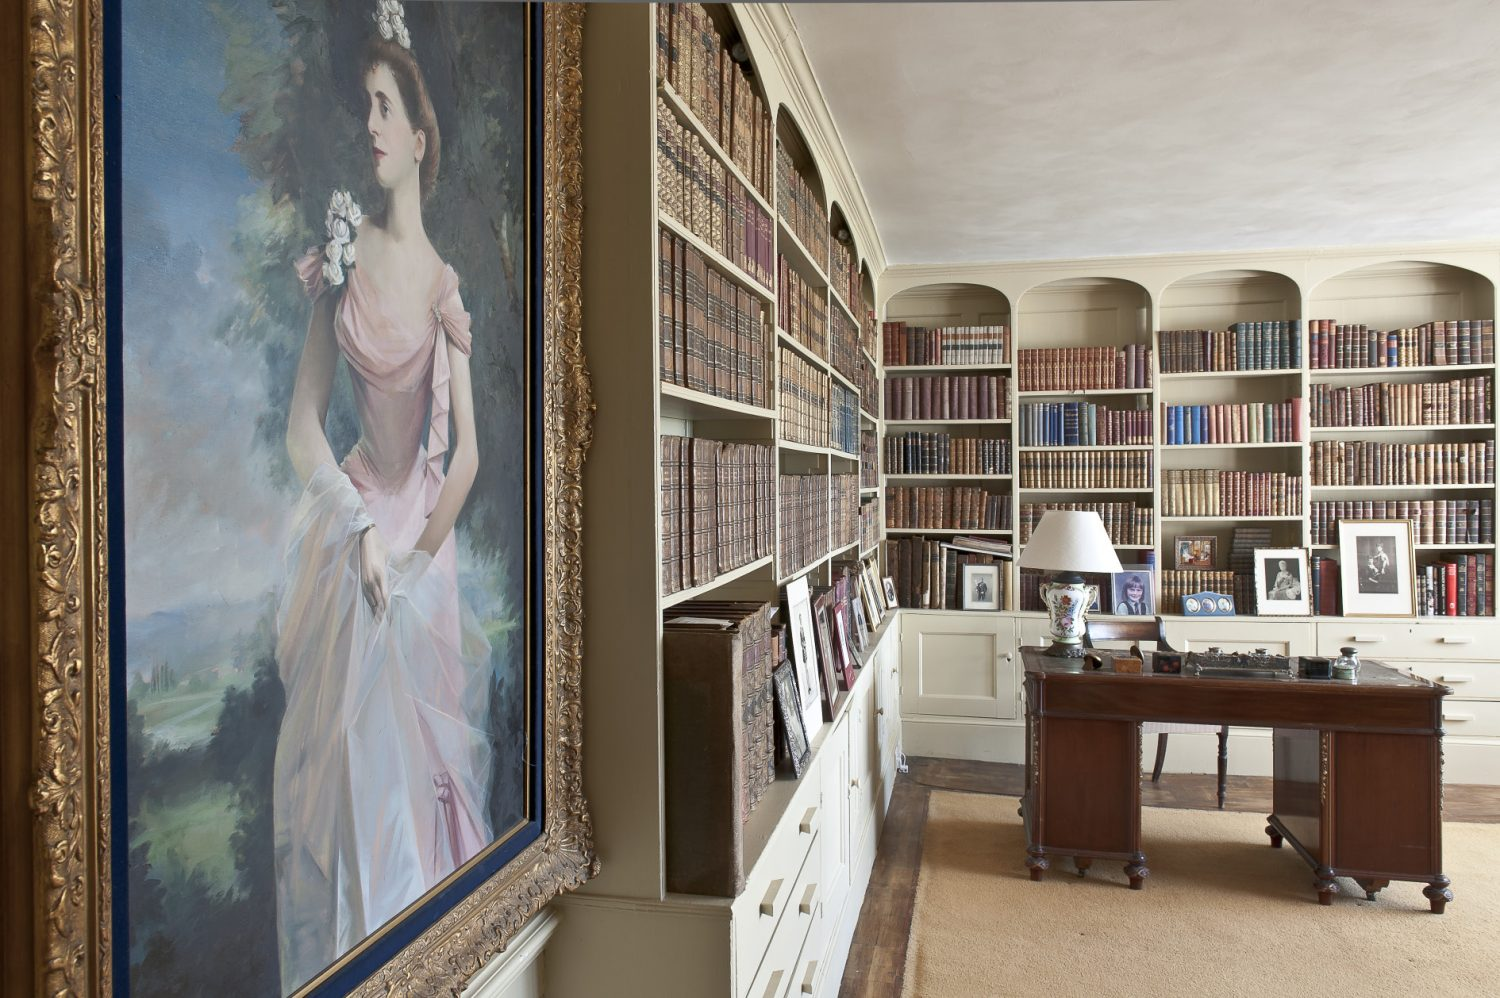 The library walls are painted a soft ochre yellow and two sides of the room feature floor to ceiling cupboards and shelves that support hundreds of leather-bound books.